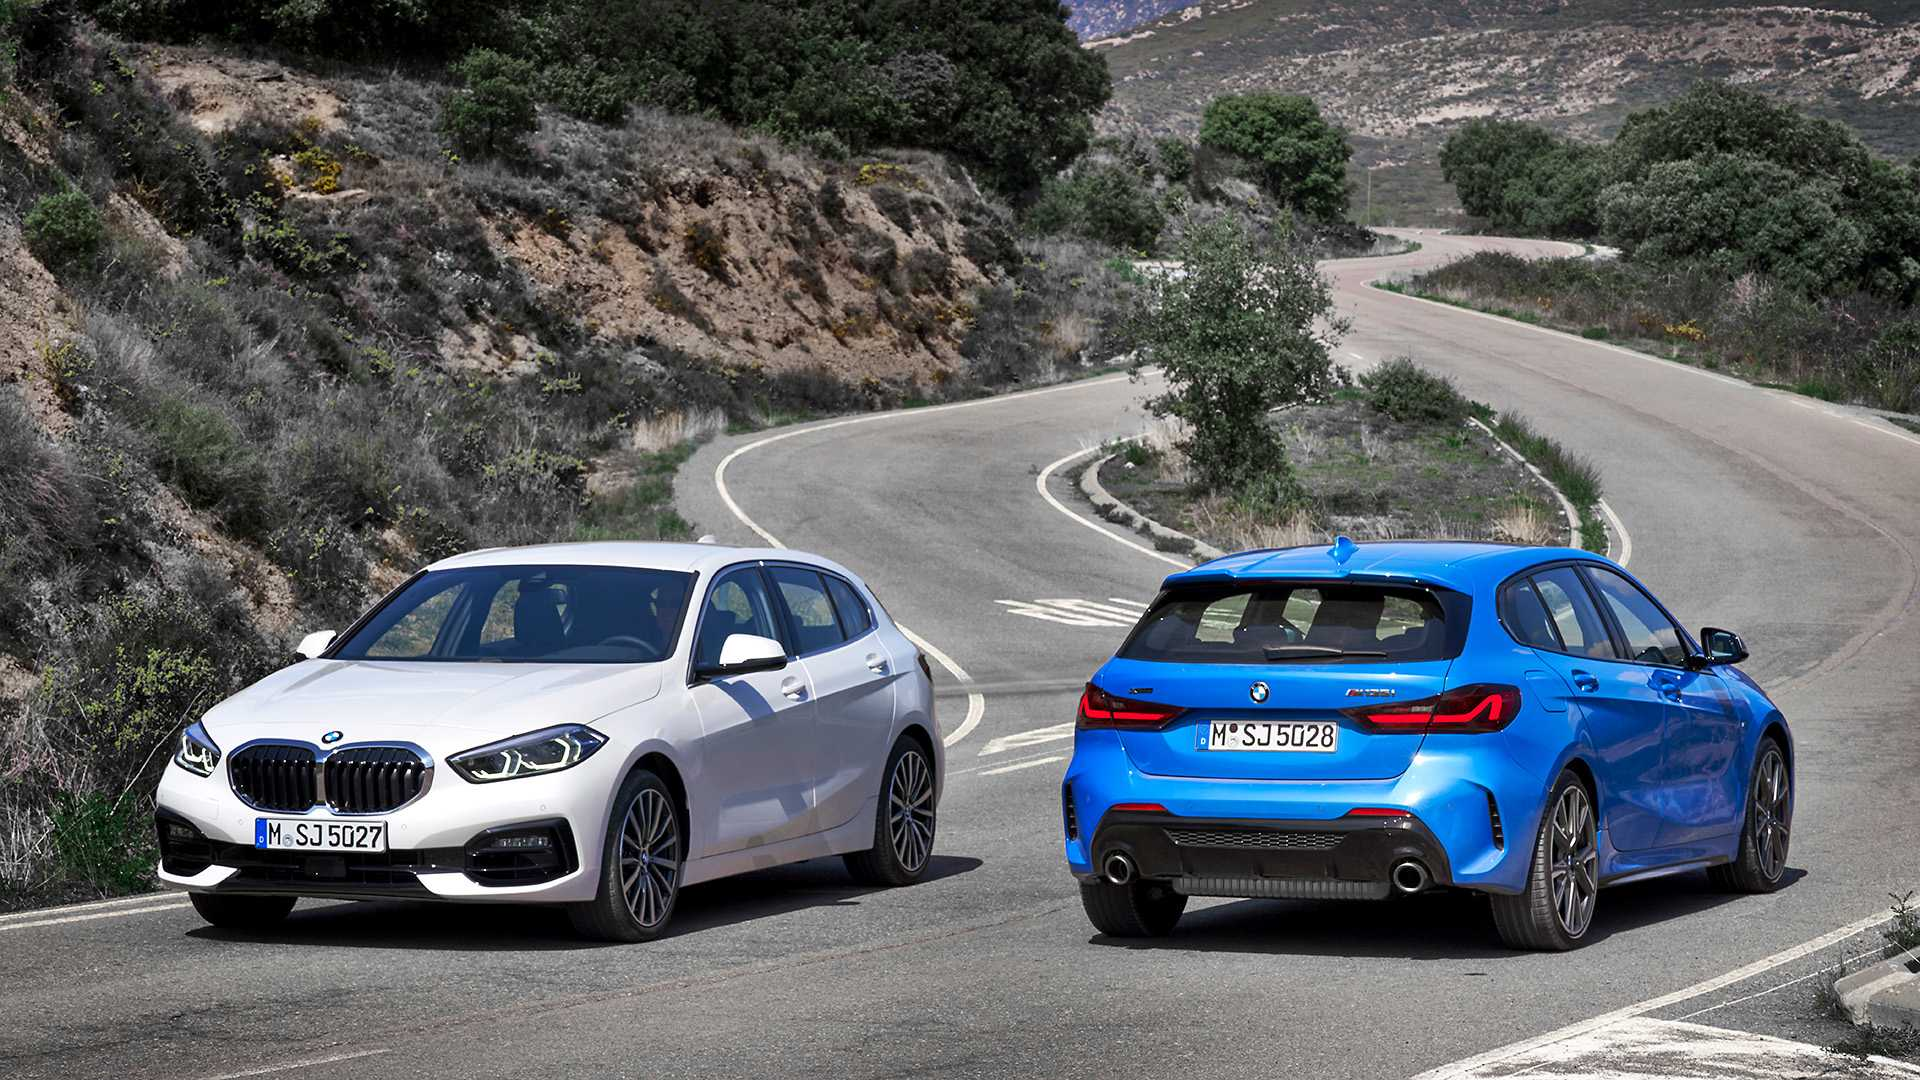 Reveal Meet The All-New 2020 BMW 1 Series